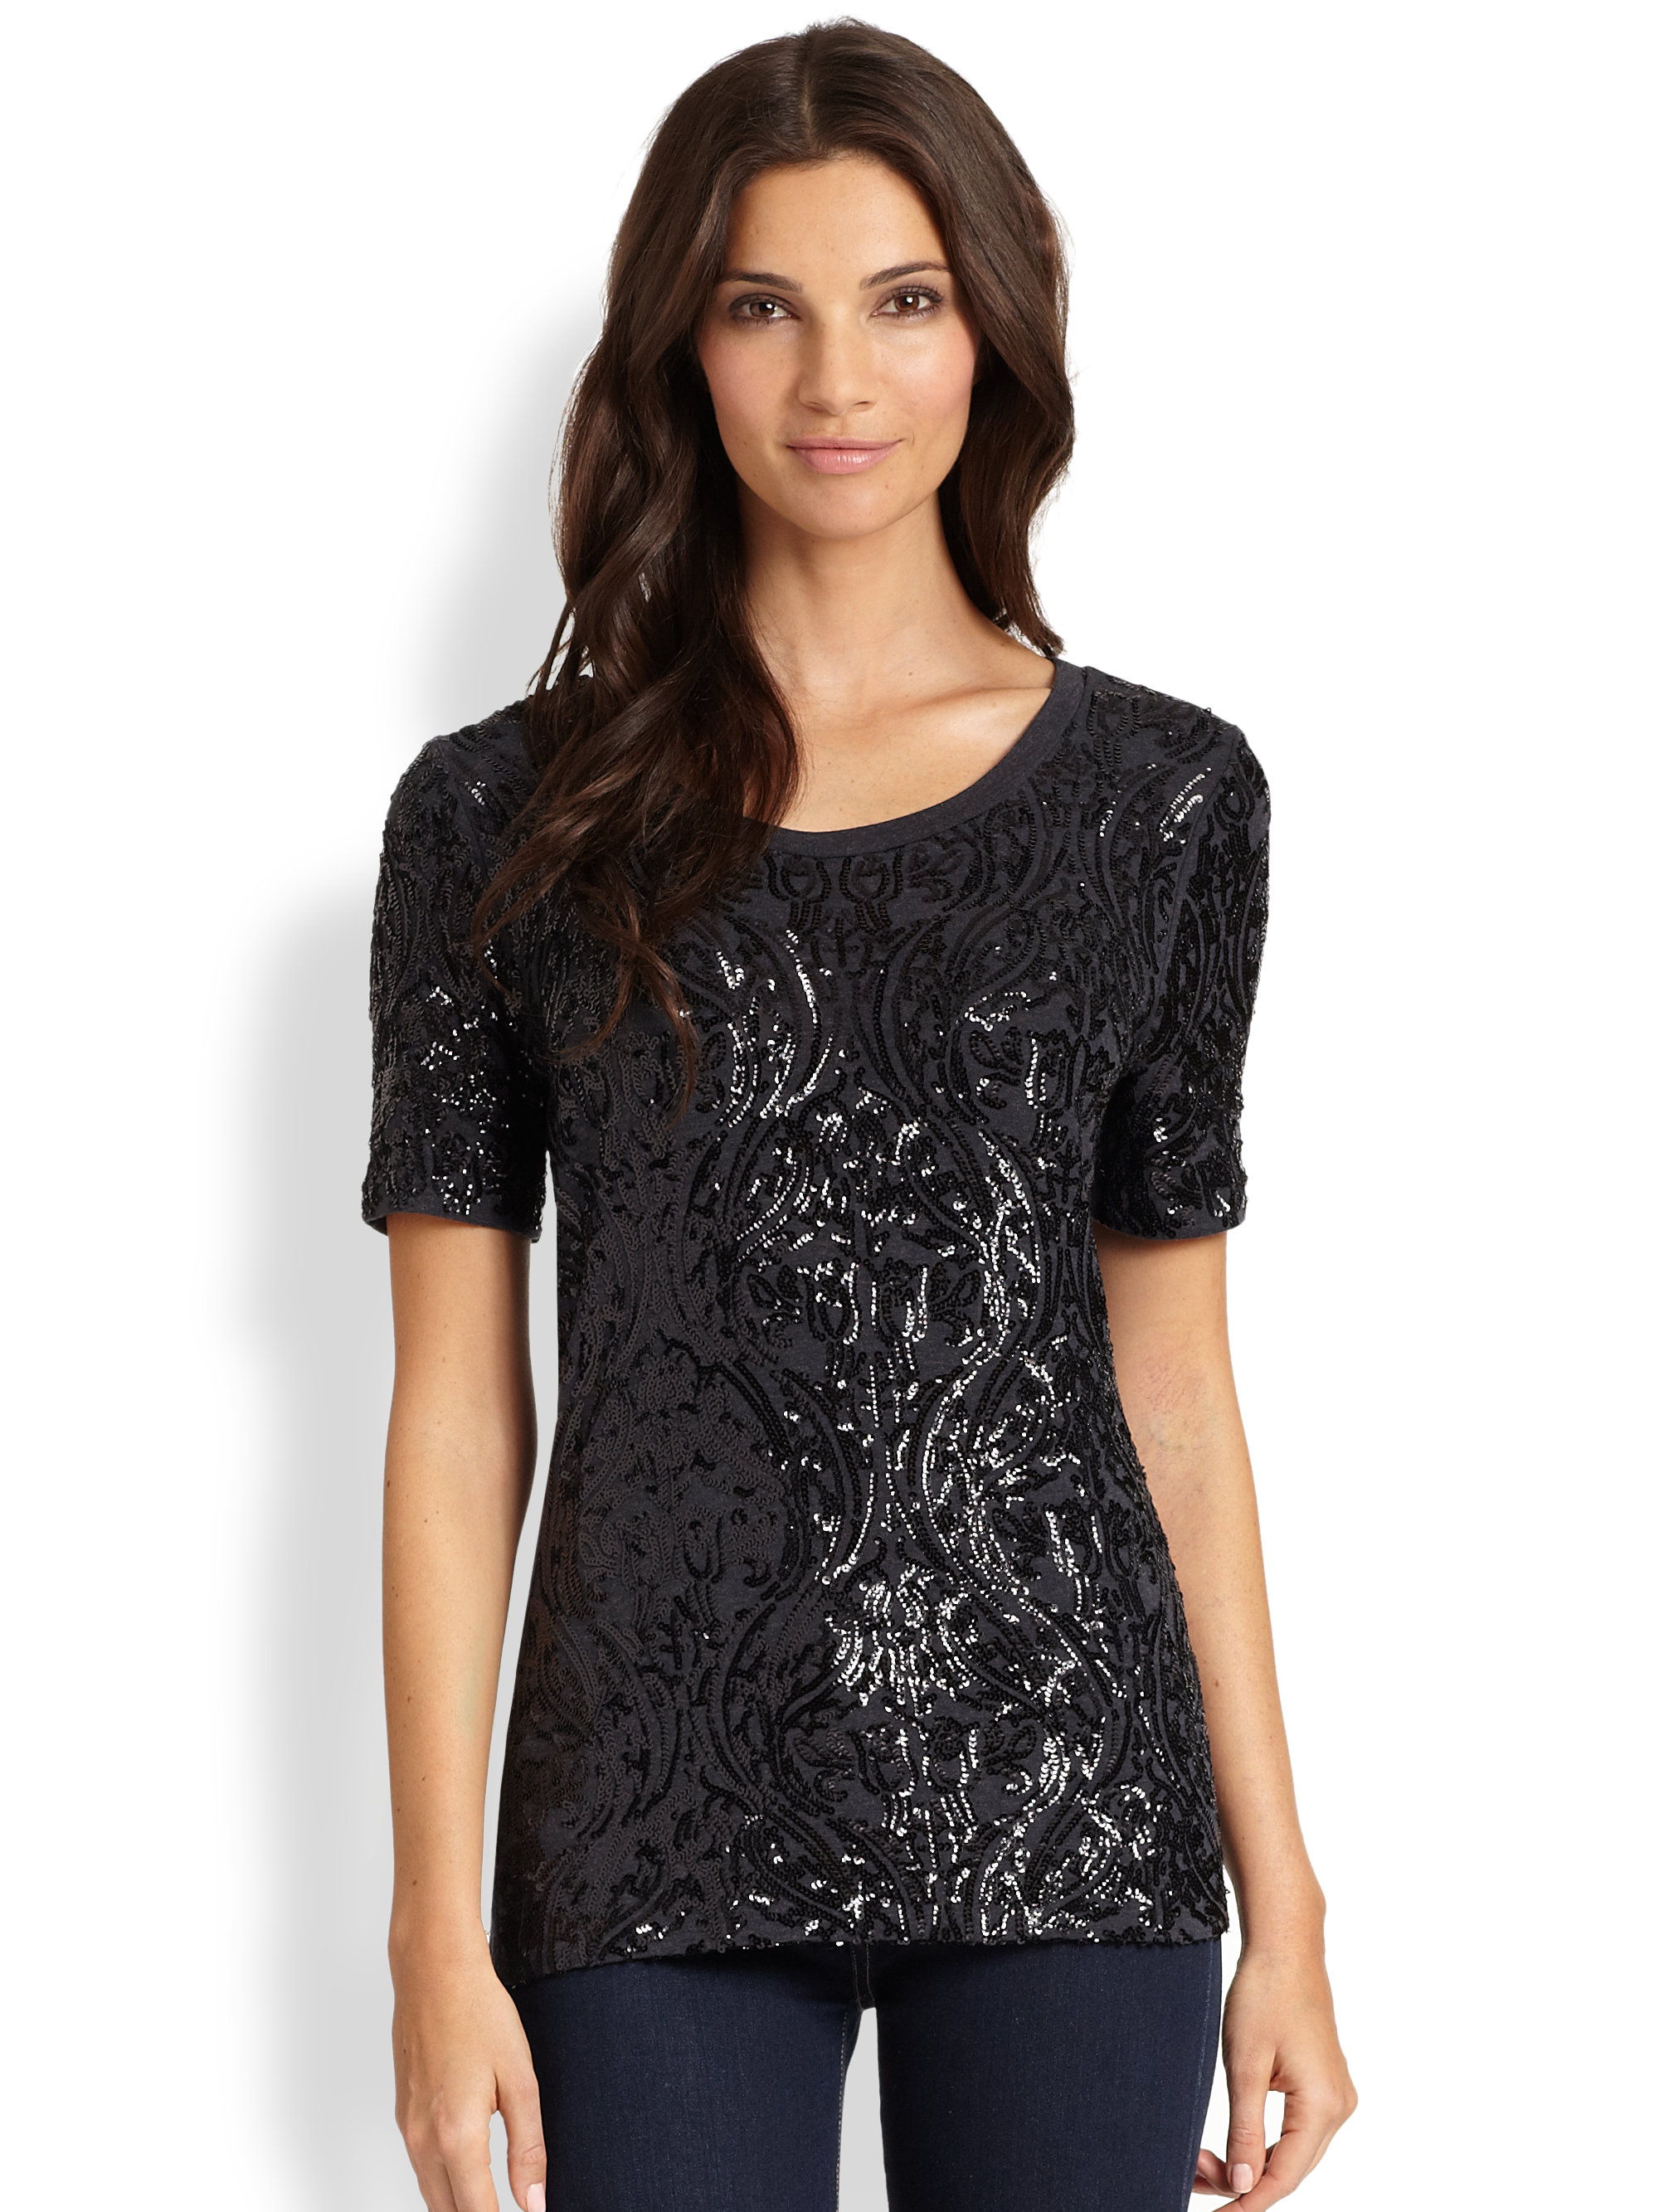 Lyst tory burch gillian sequin tee in black for Tory burch t shirt